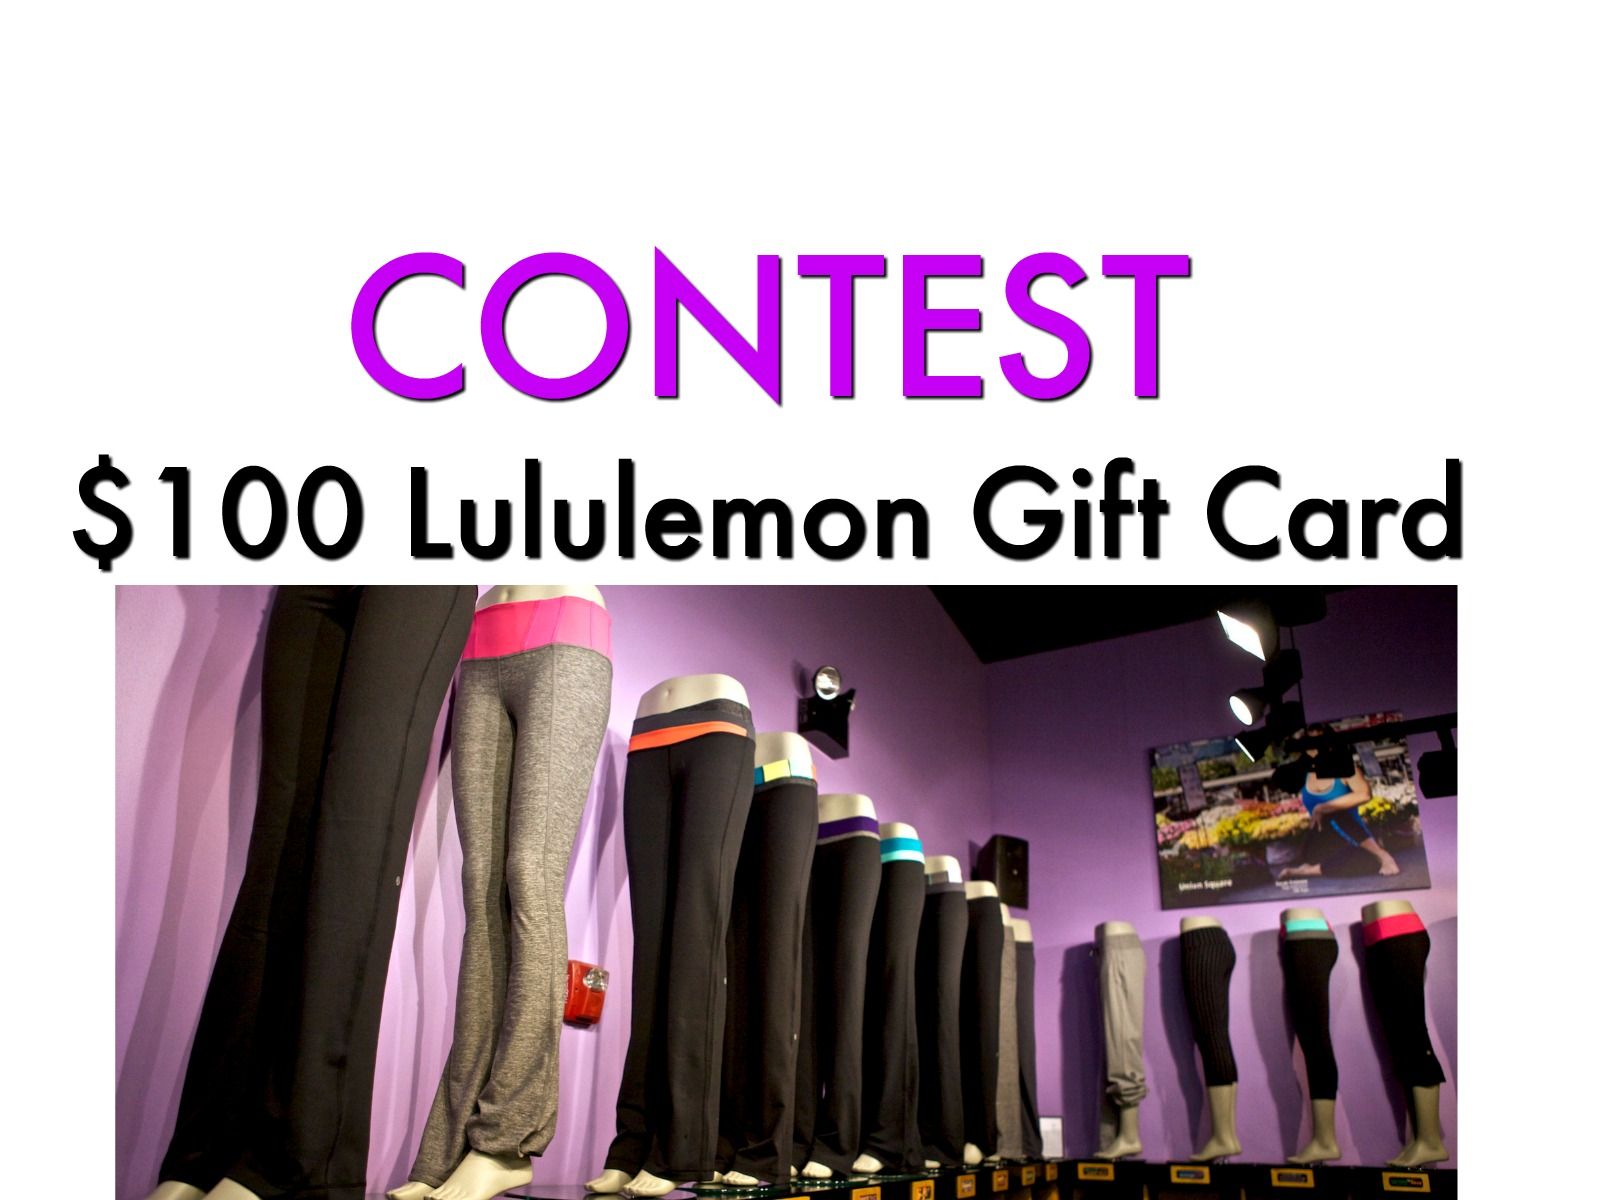 Contest: Win a $100 Lululemon Gift Card